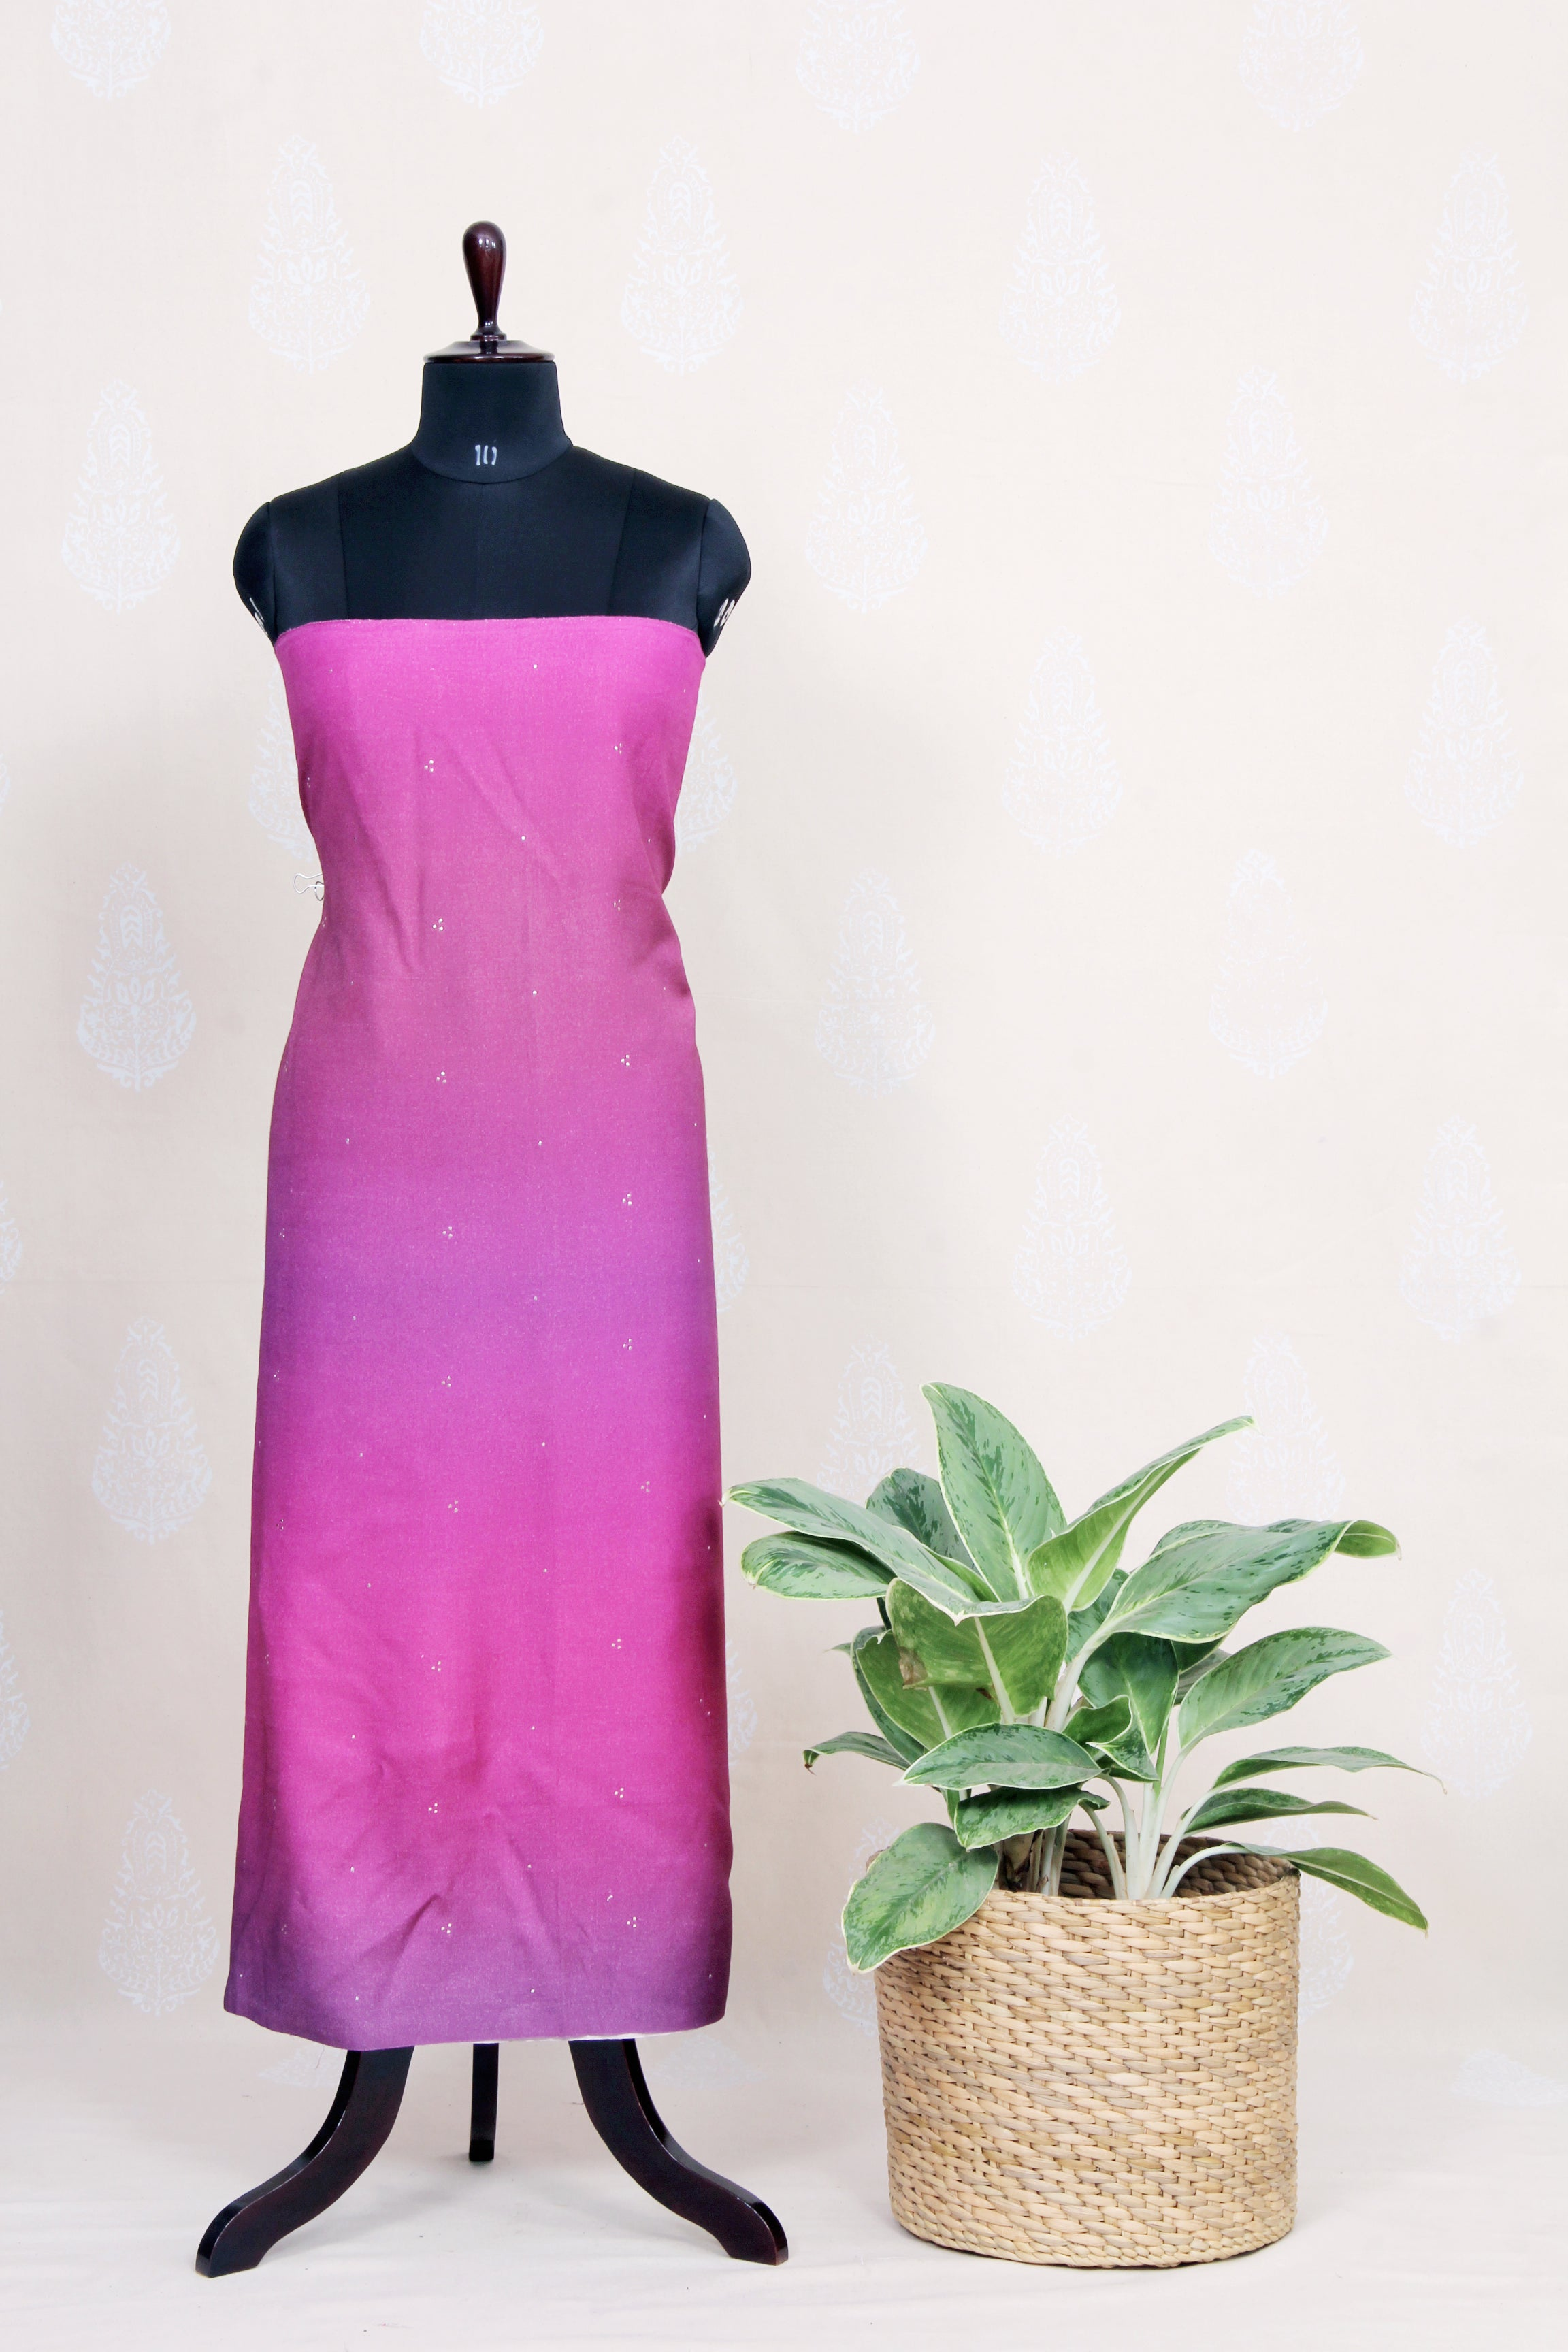 Handwoven Ombre Dyed Silk Kurtha Material With Mukaish Work- Purple - Tina Eapen Design Studio